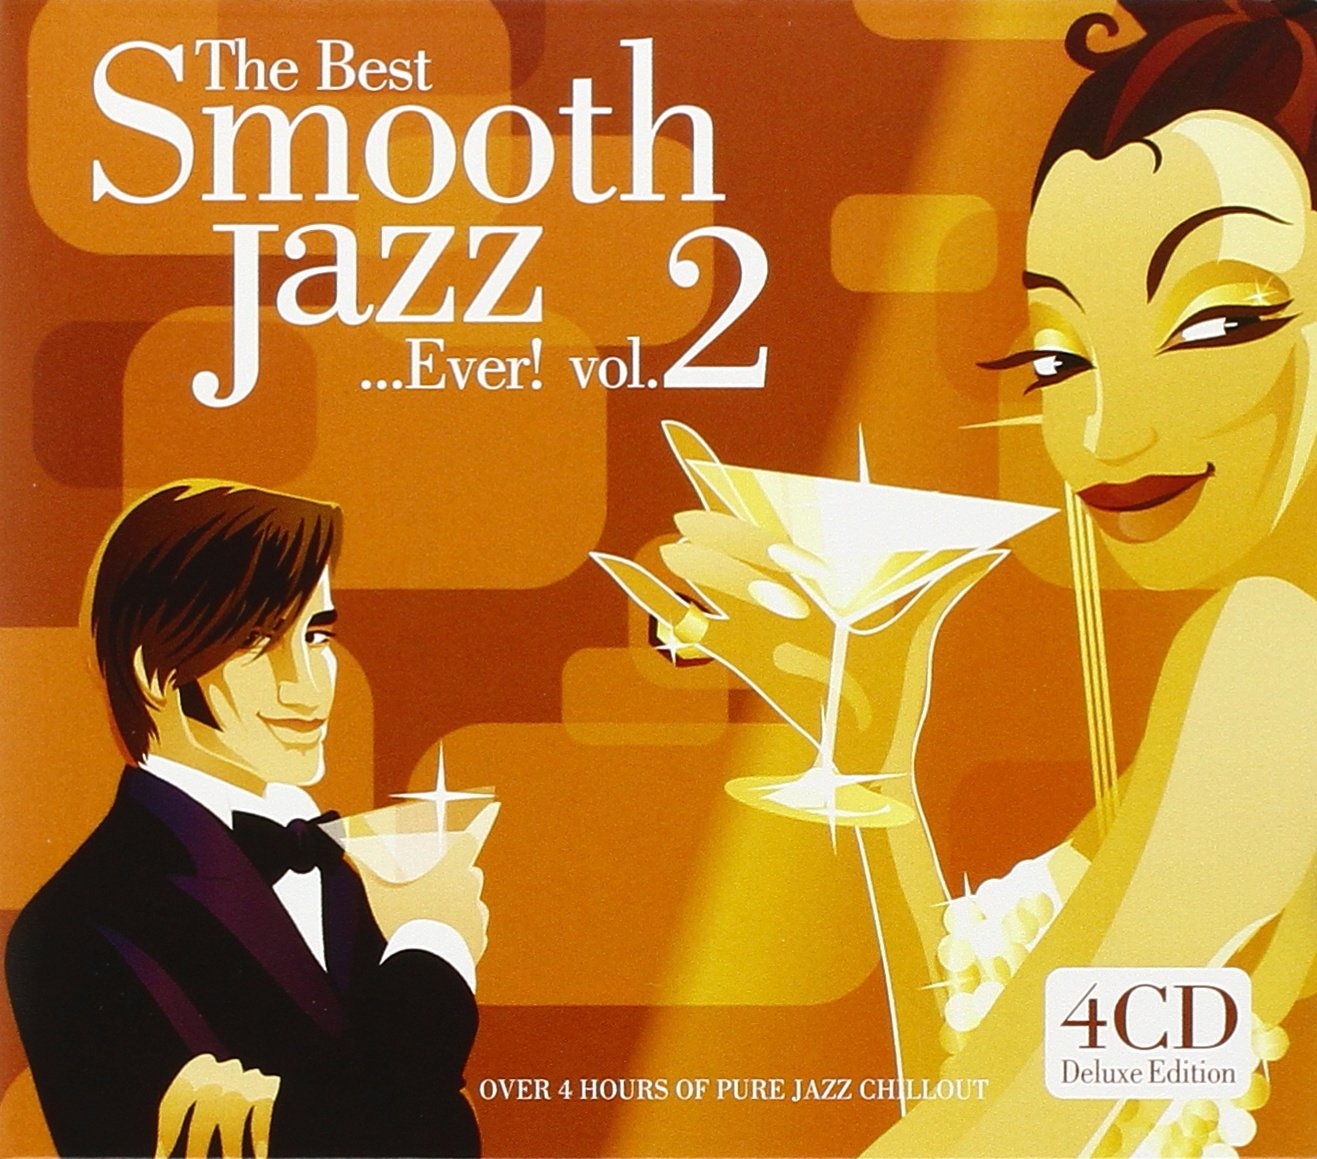 The Best Smooth Jazz Ever! Vol. 2